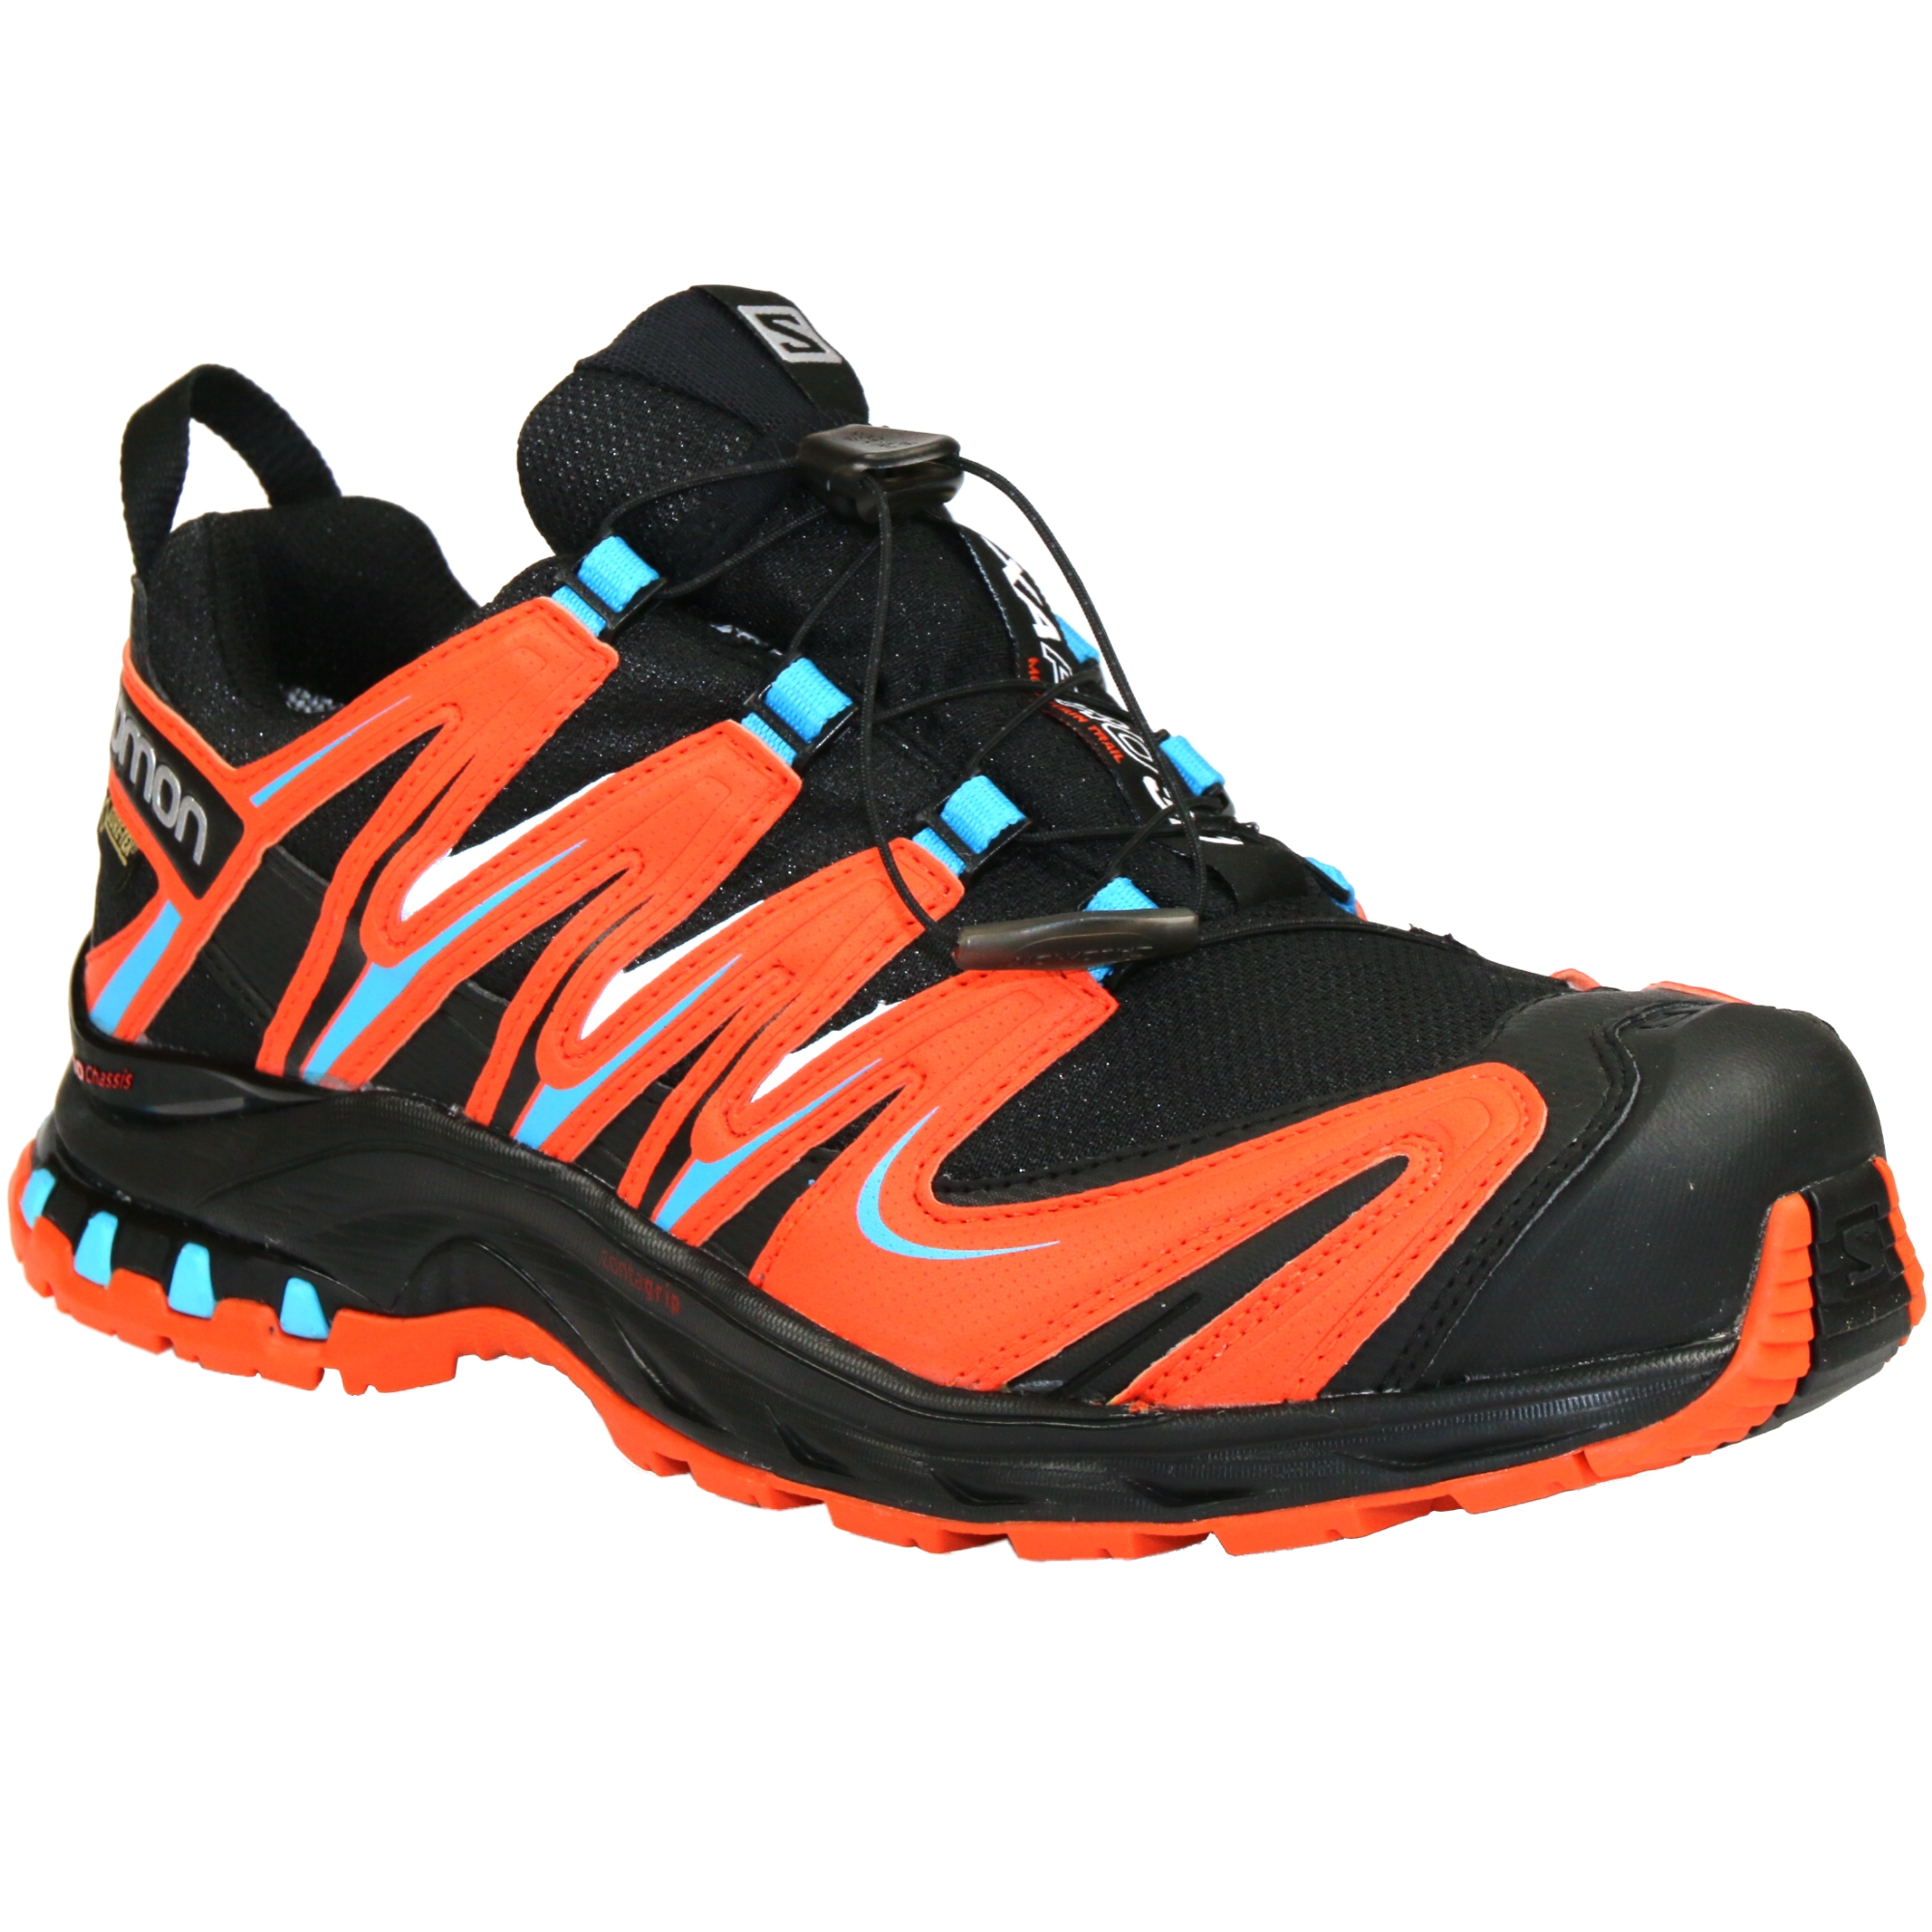 salomon xa pro 3d gtx gore tex schuhe wanderschuhe trail. Black Bedroom Furniture Sets. Home Design Ideas